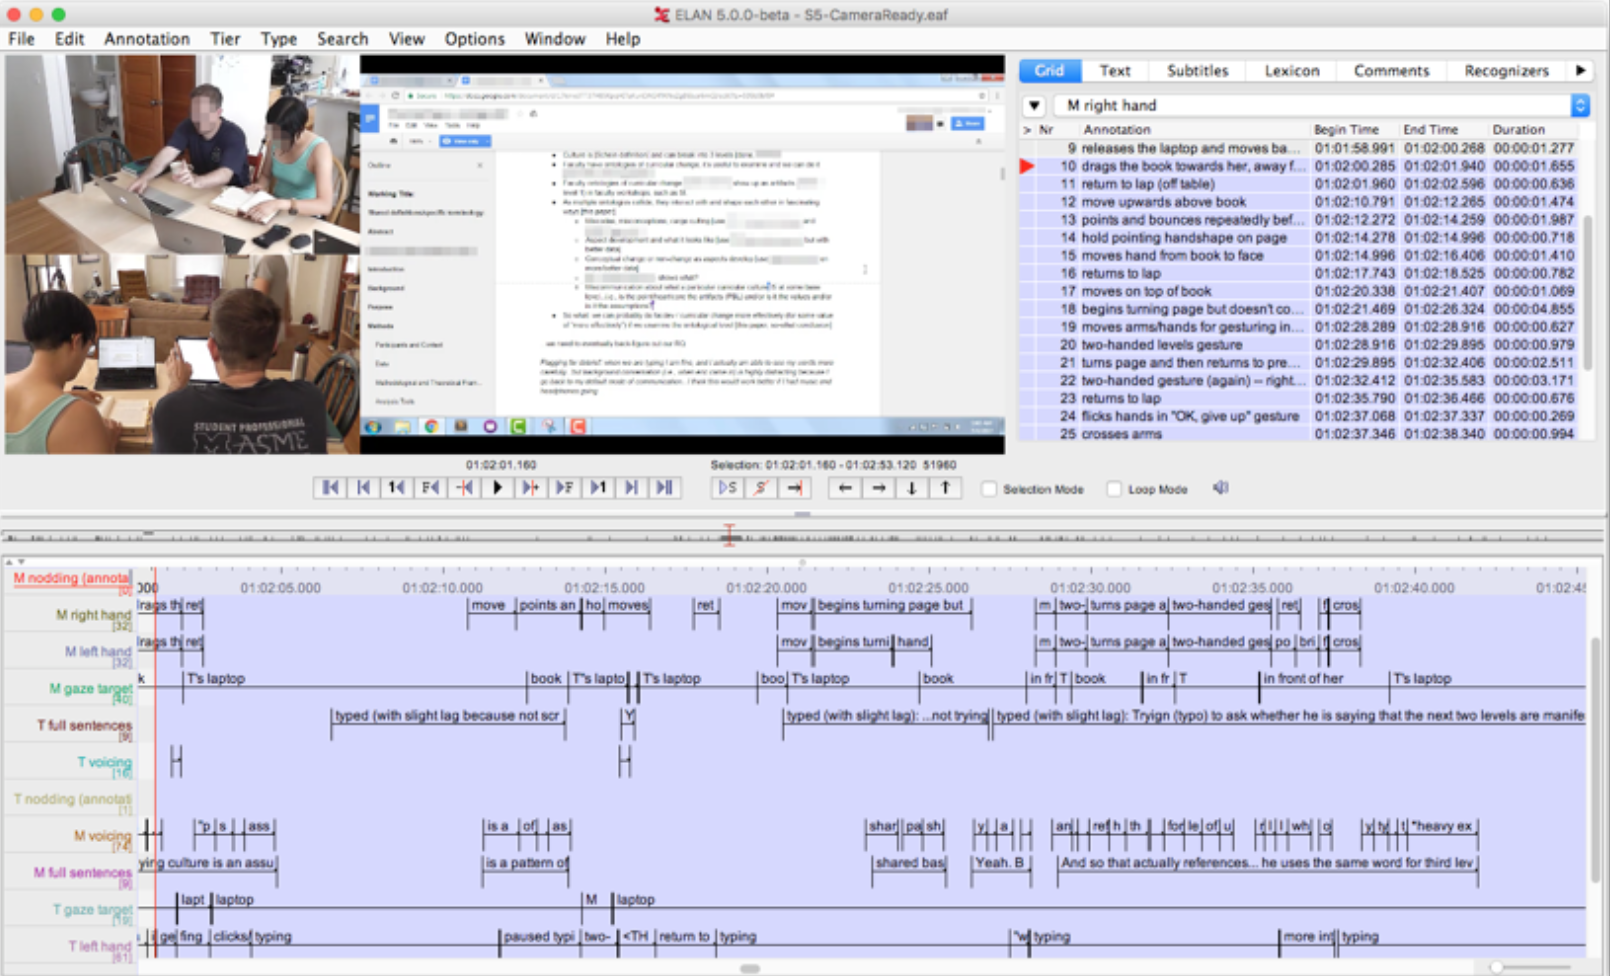 A figure of the video analysis software that was included in the methods section of the research paper. The video frame is of a Deaf-hearing dyad collaborating next to each other in front of their laptops. There is also a screenshot of their shared Google Doc in the video.